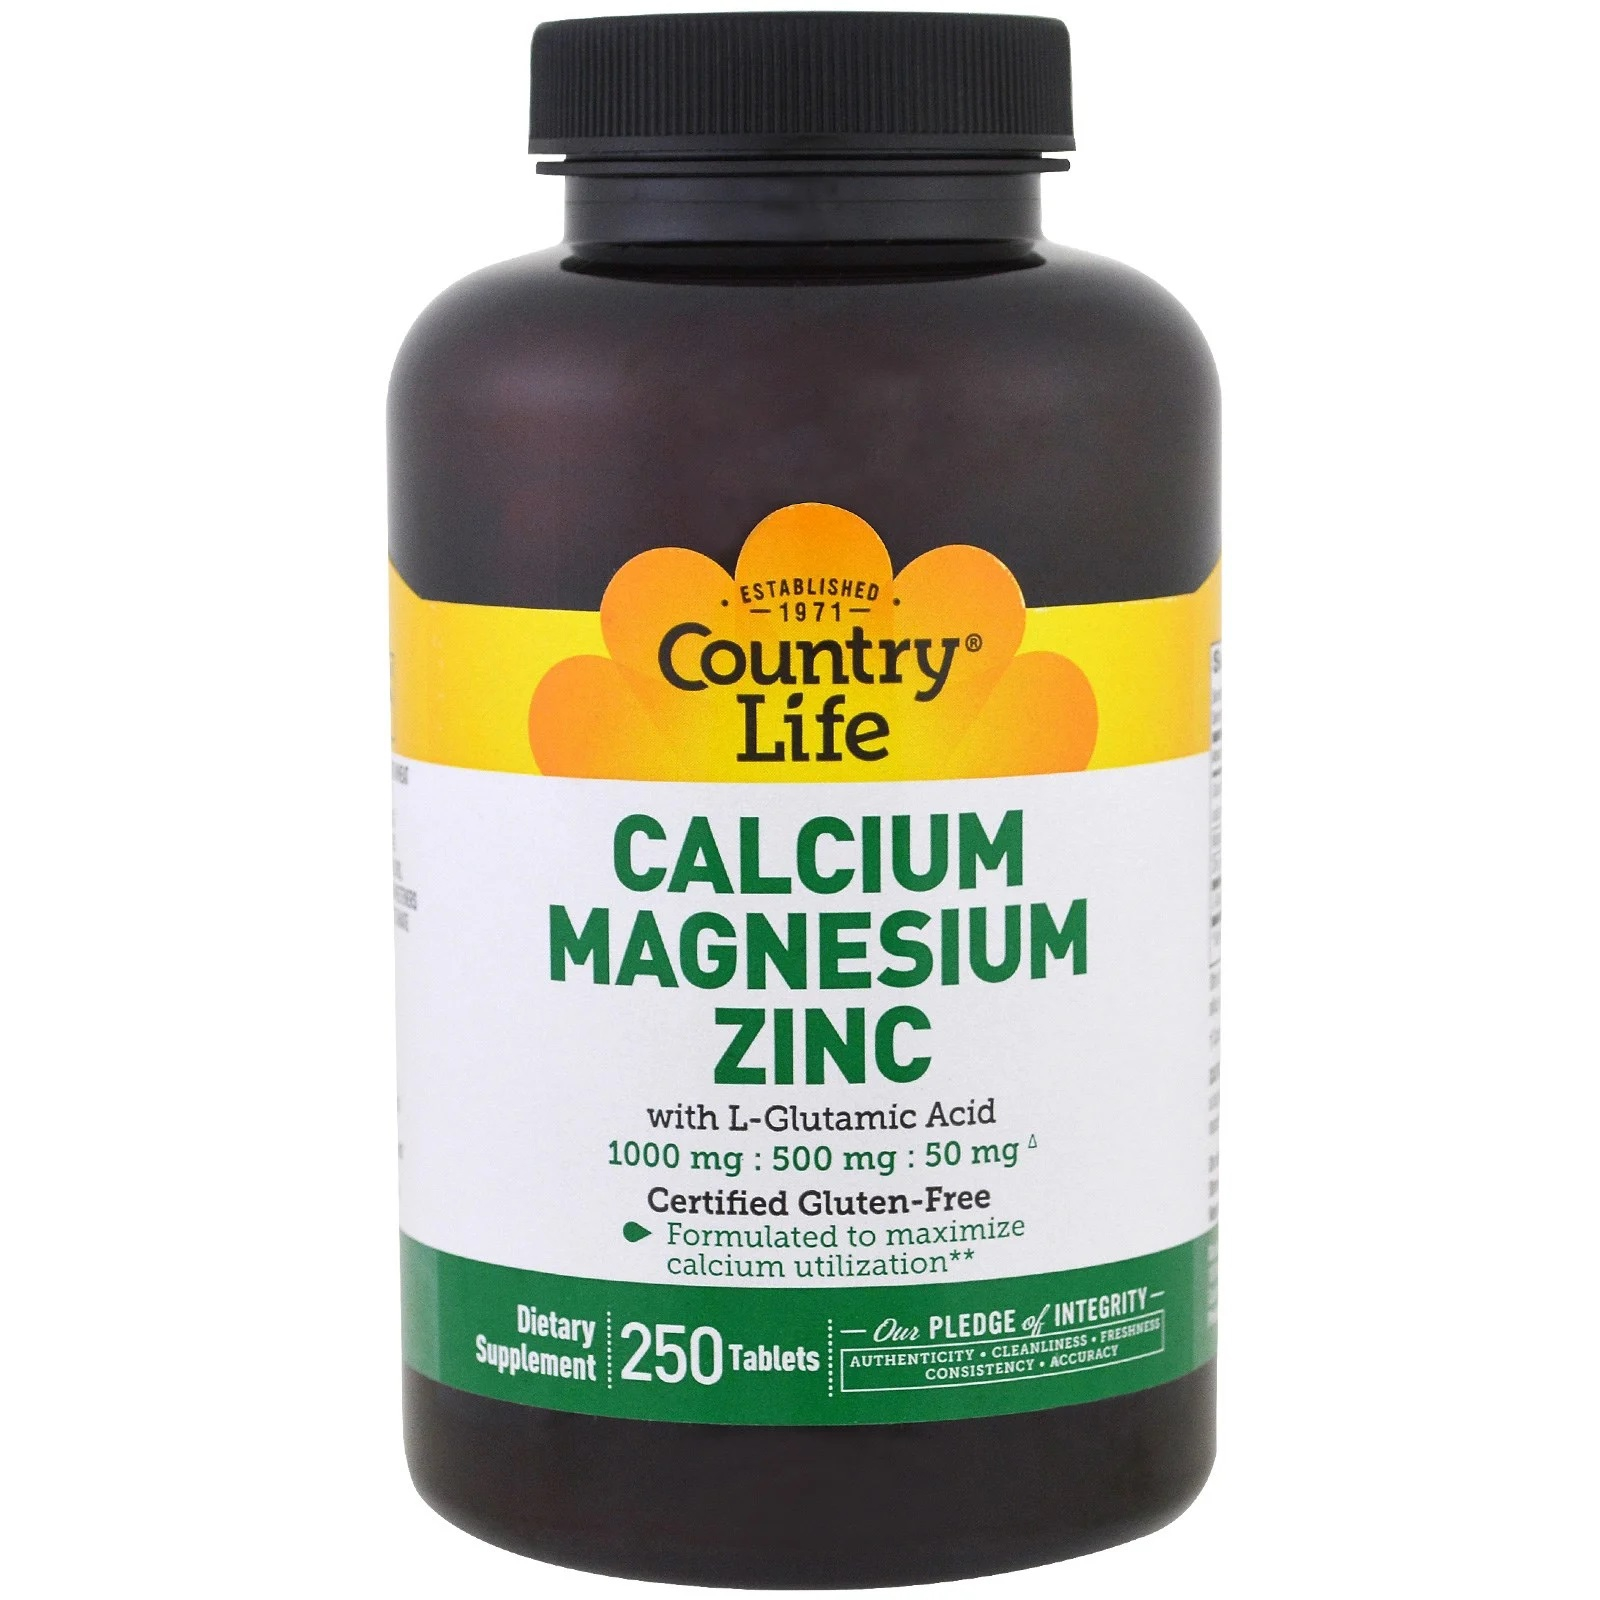 Image of Calcium Magnesium Zinc (250 Tablets) - Country Life 0015794026044